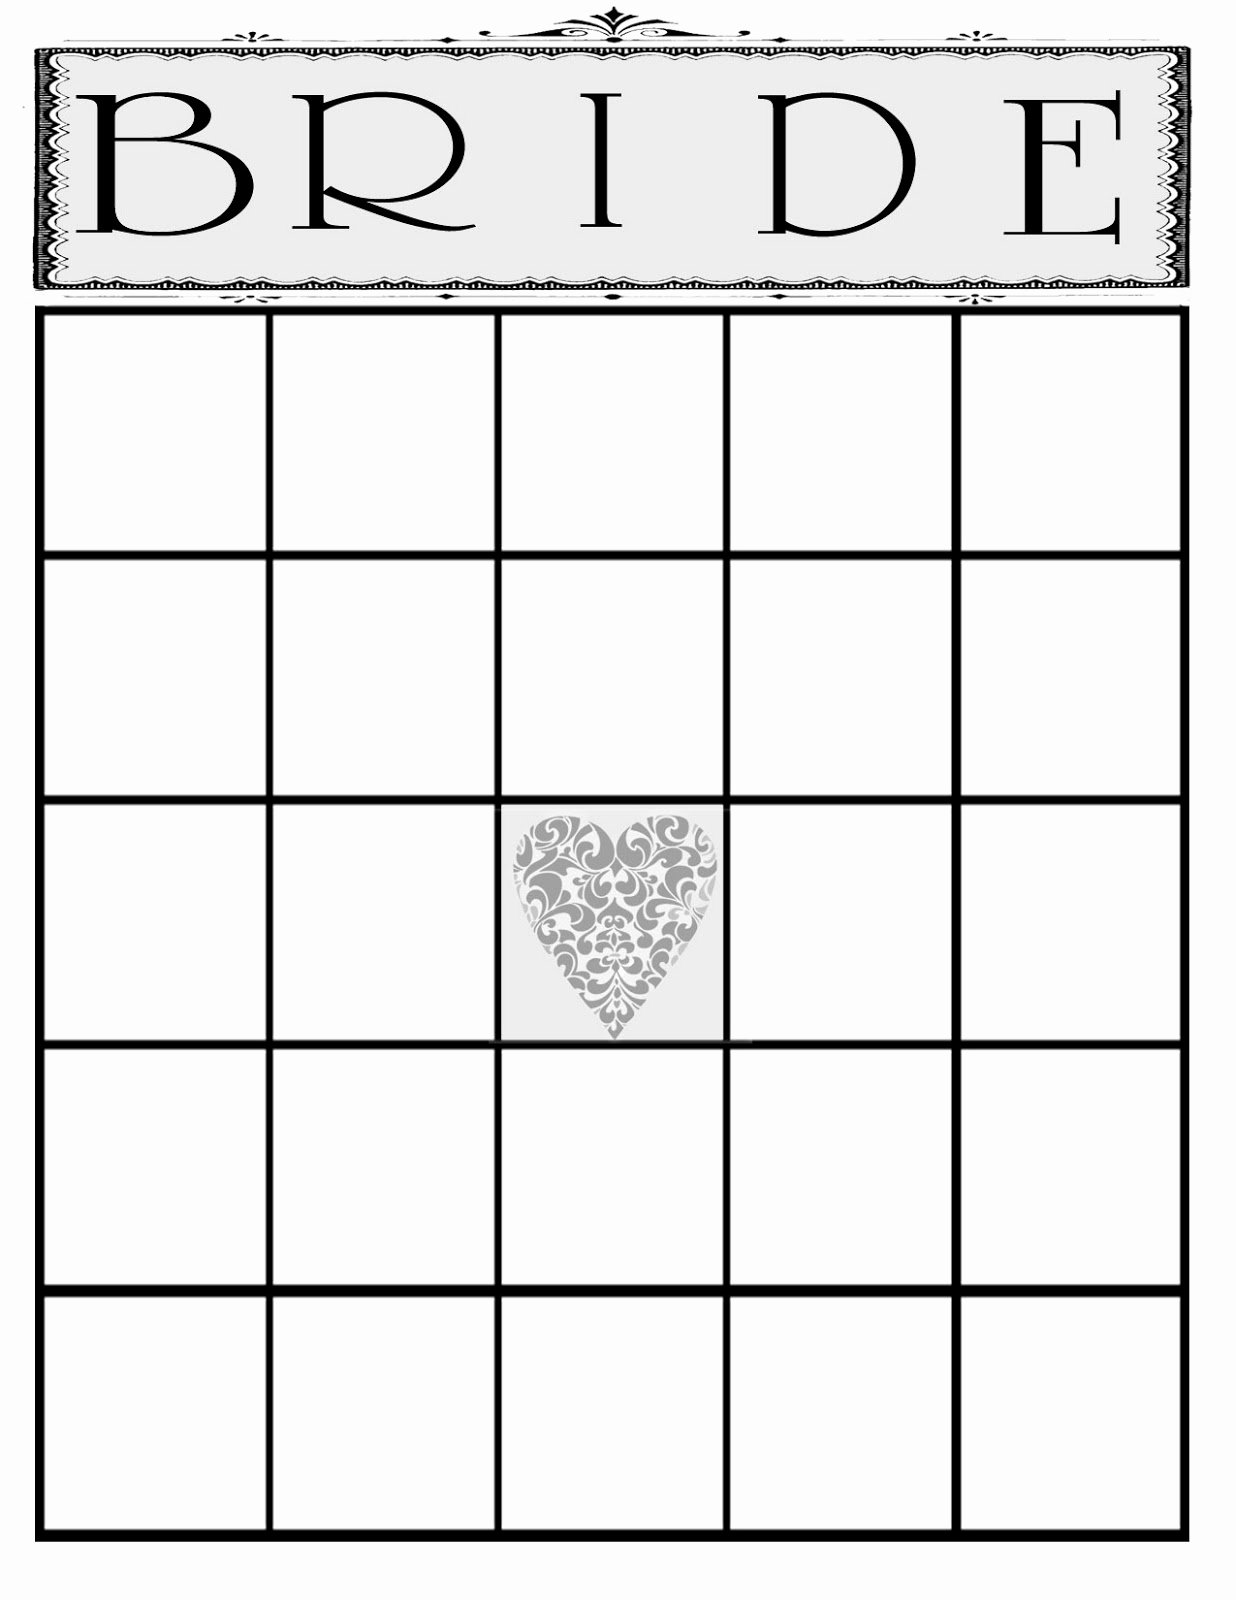 Bridal Shower Bingo Template Free Luxury the Creative Pointe A Beautiful Bridal Shower and A